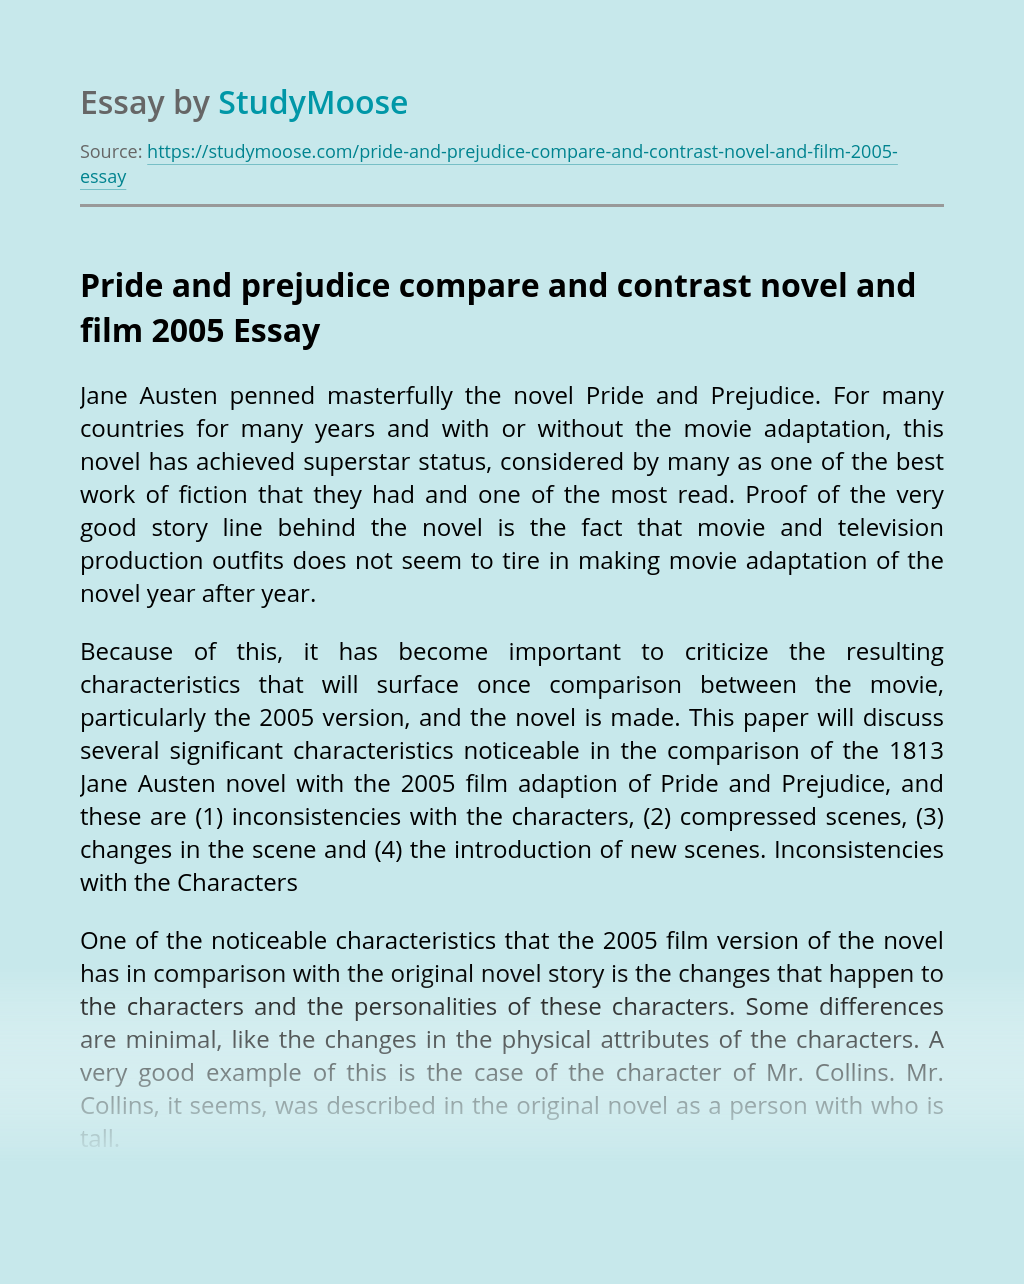 Pride and prejudice compare and contrast novel and film 2005